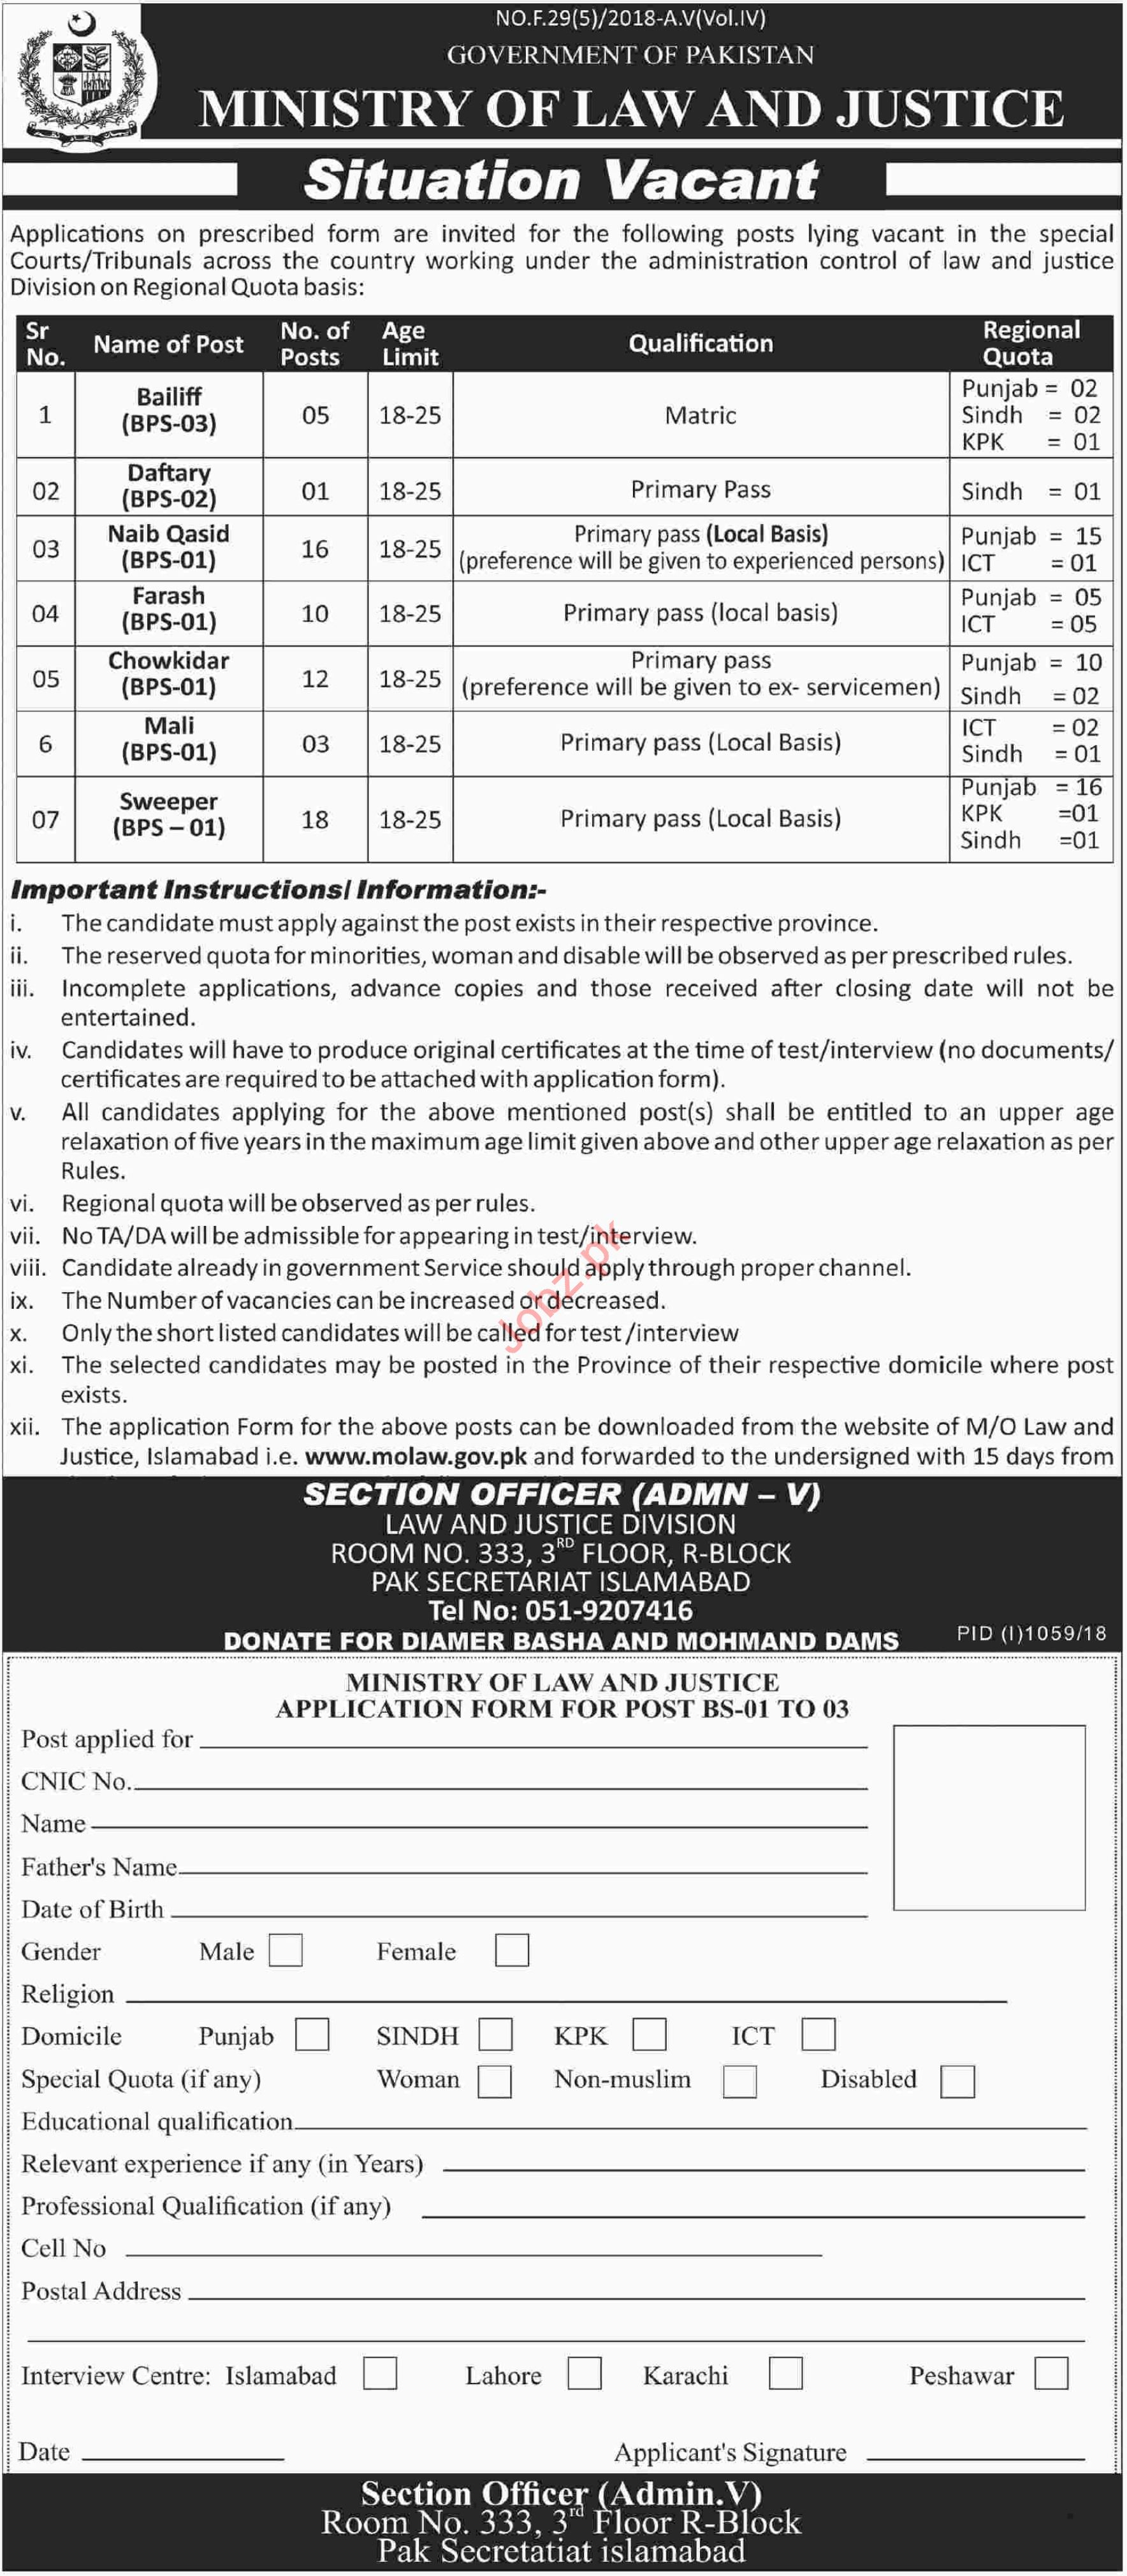 Ministry of Law & Justice Islamabad Bailiff & Daftary Jobs